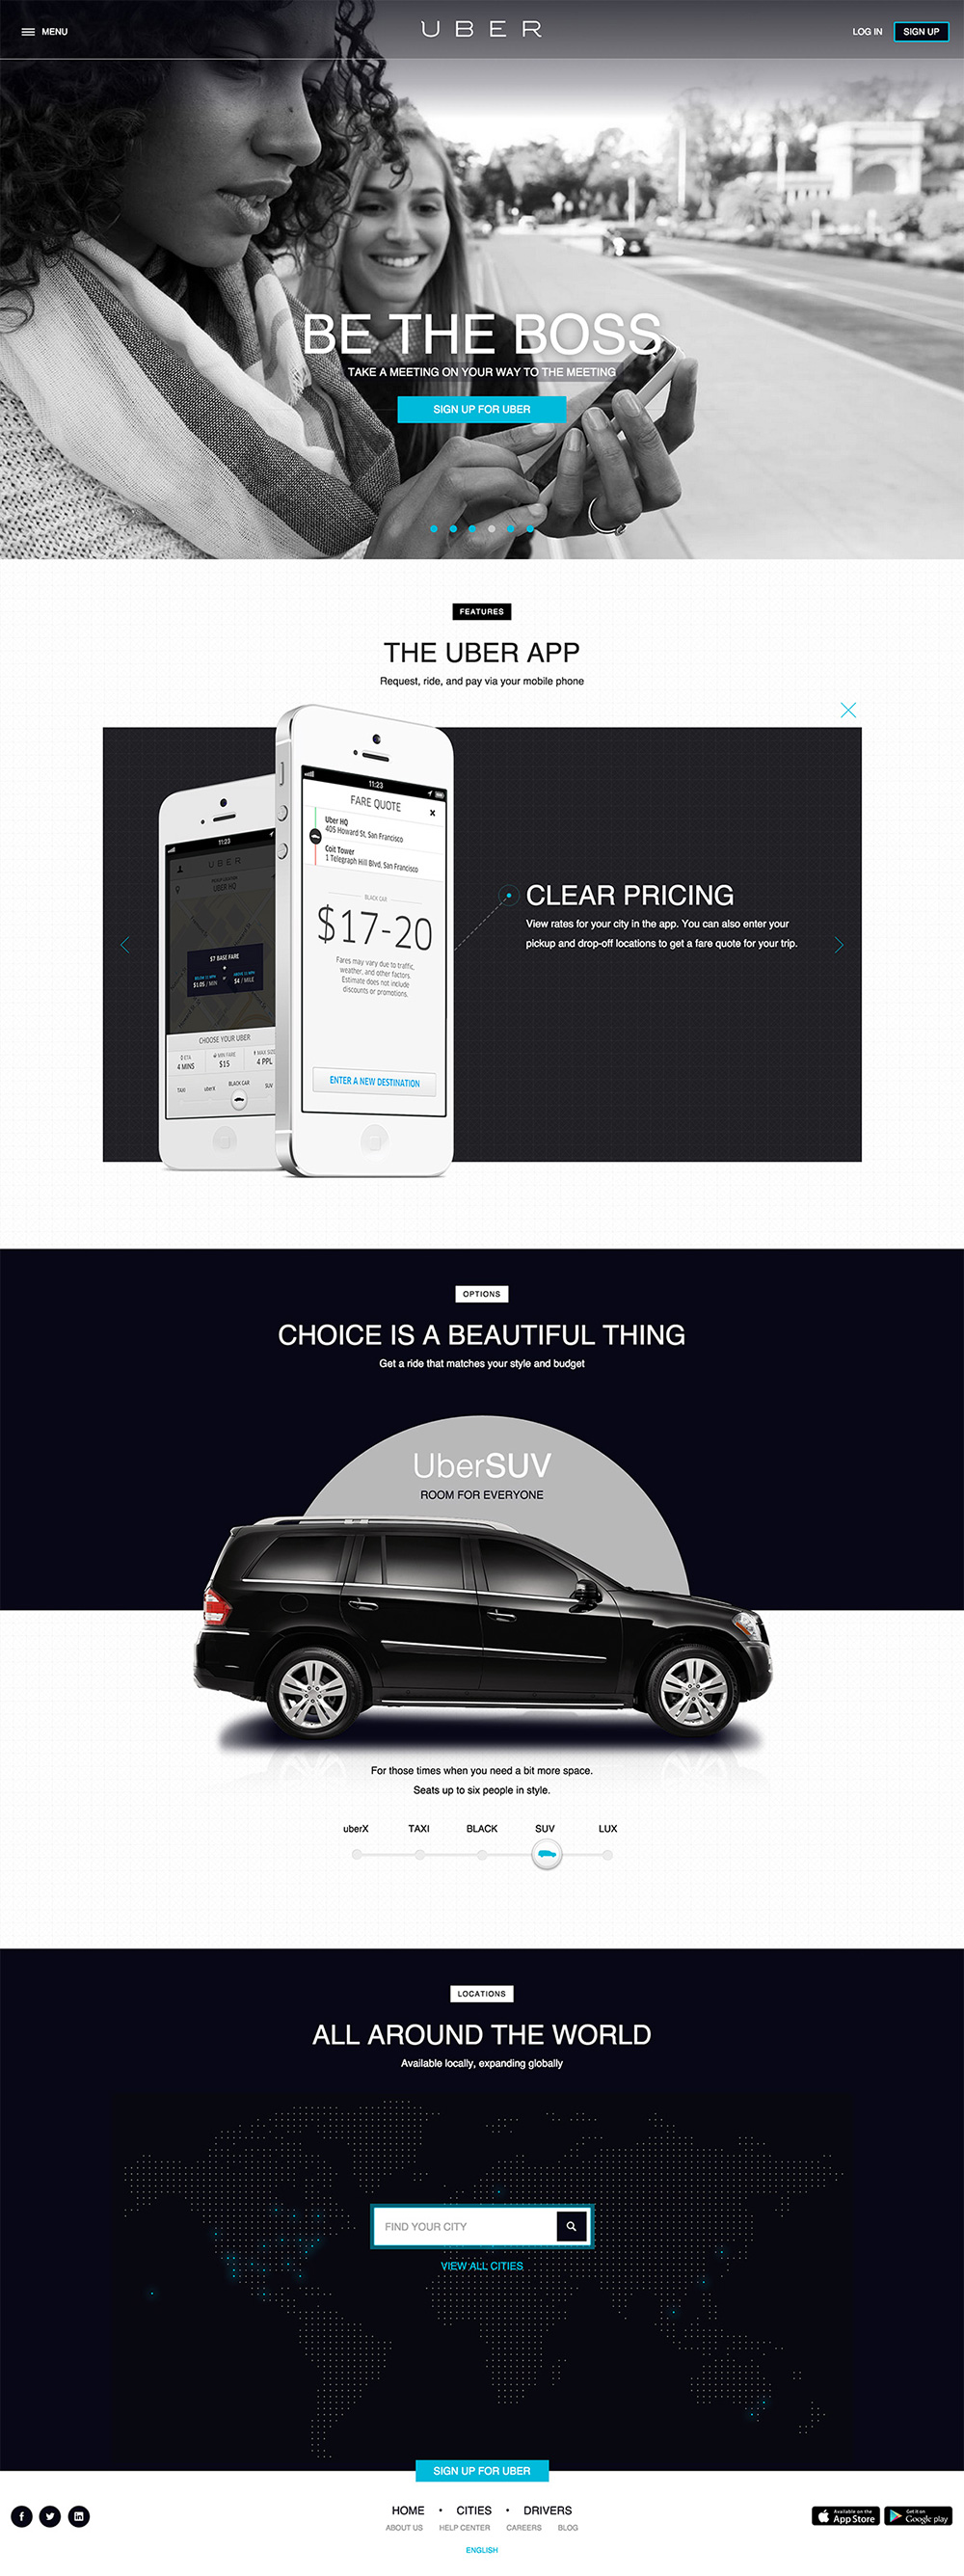 Ux Timeline Uber Back To The Past